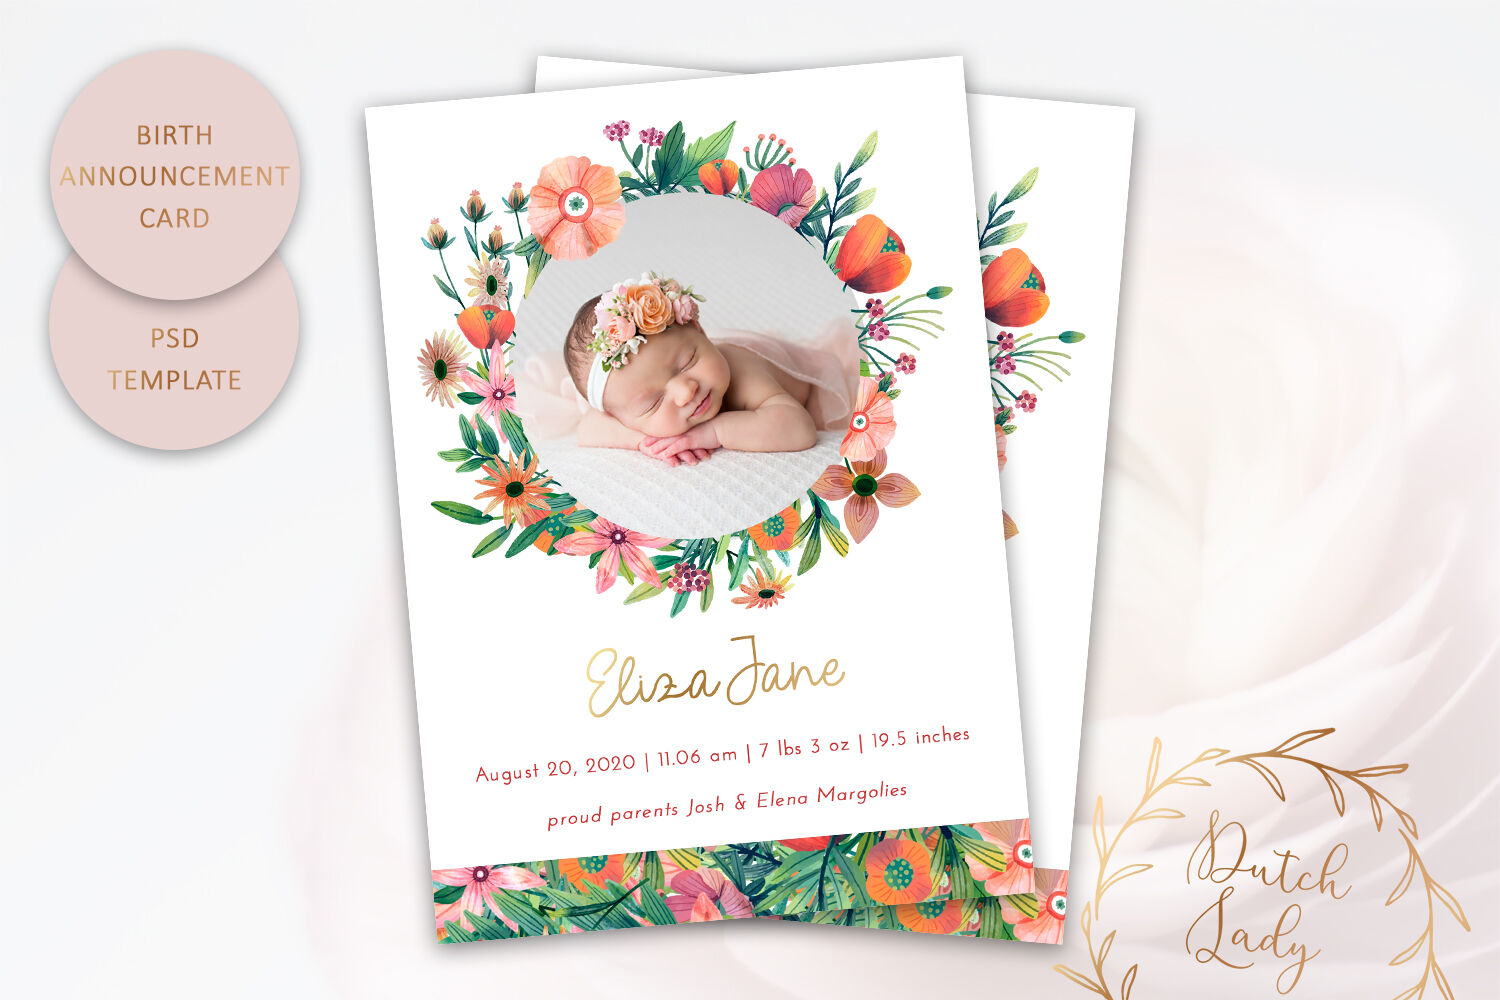 Birth Announcement Card Template #10 By The Dutch Lady ...